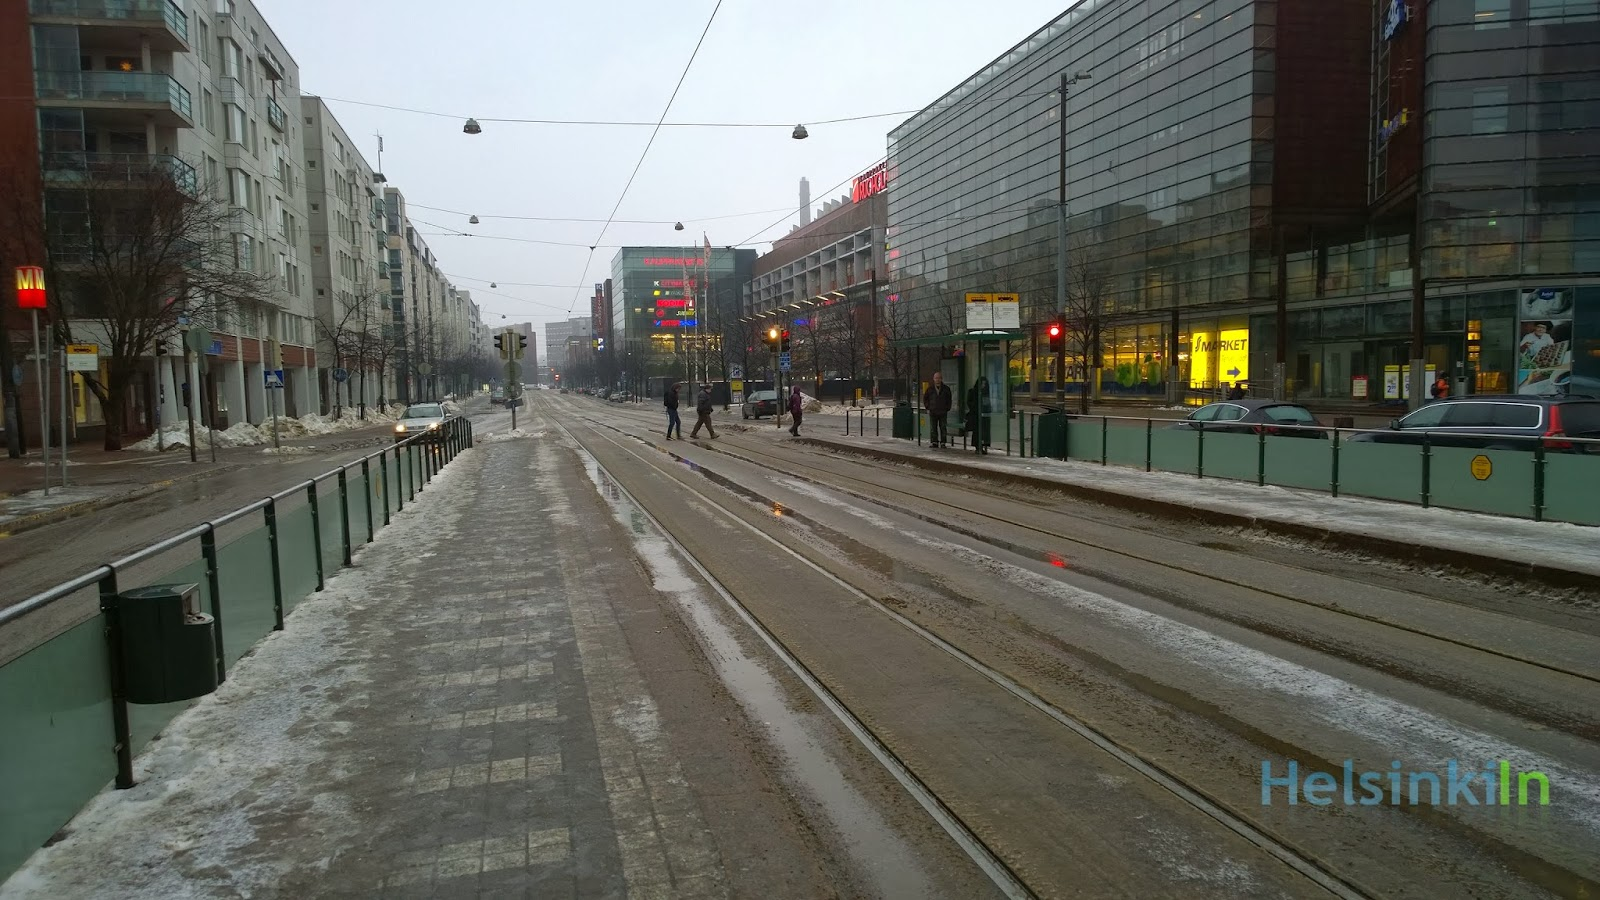 slush on the streets in Helsinki